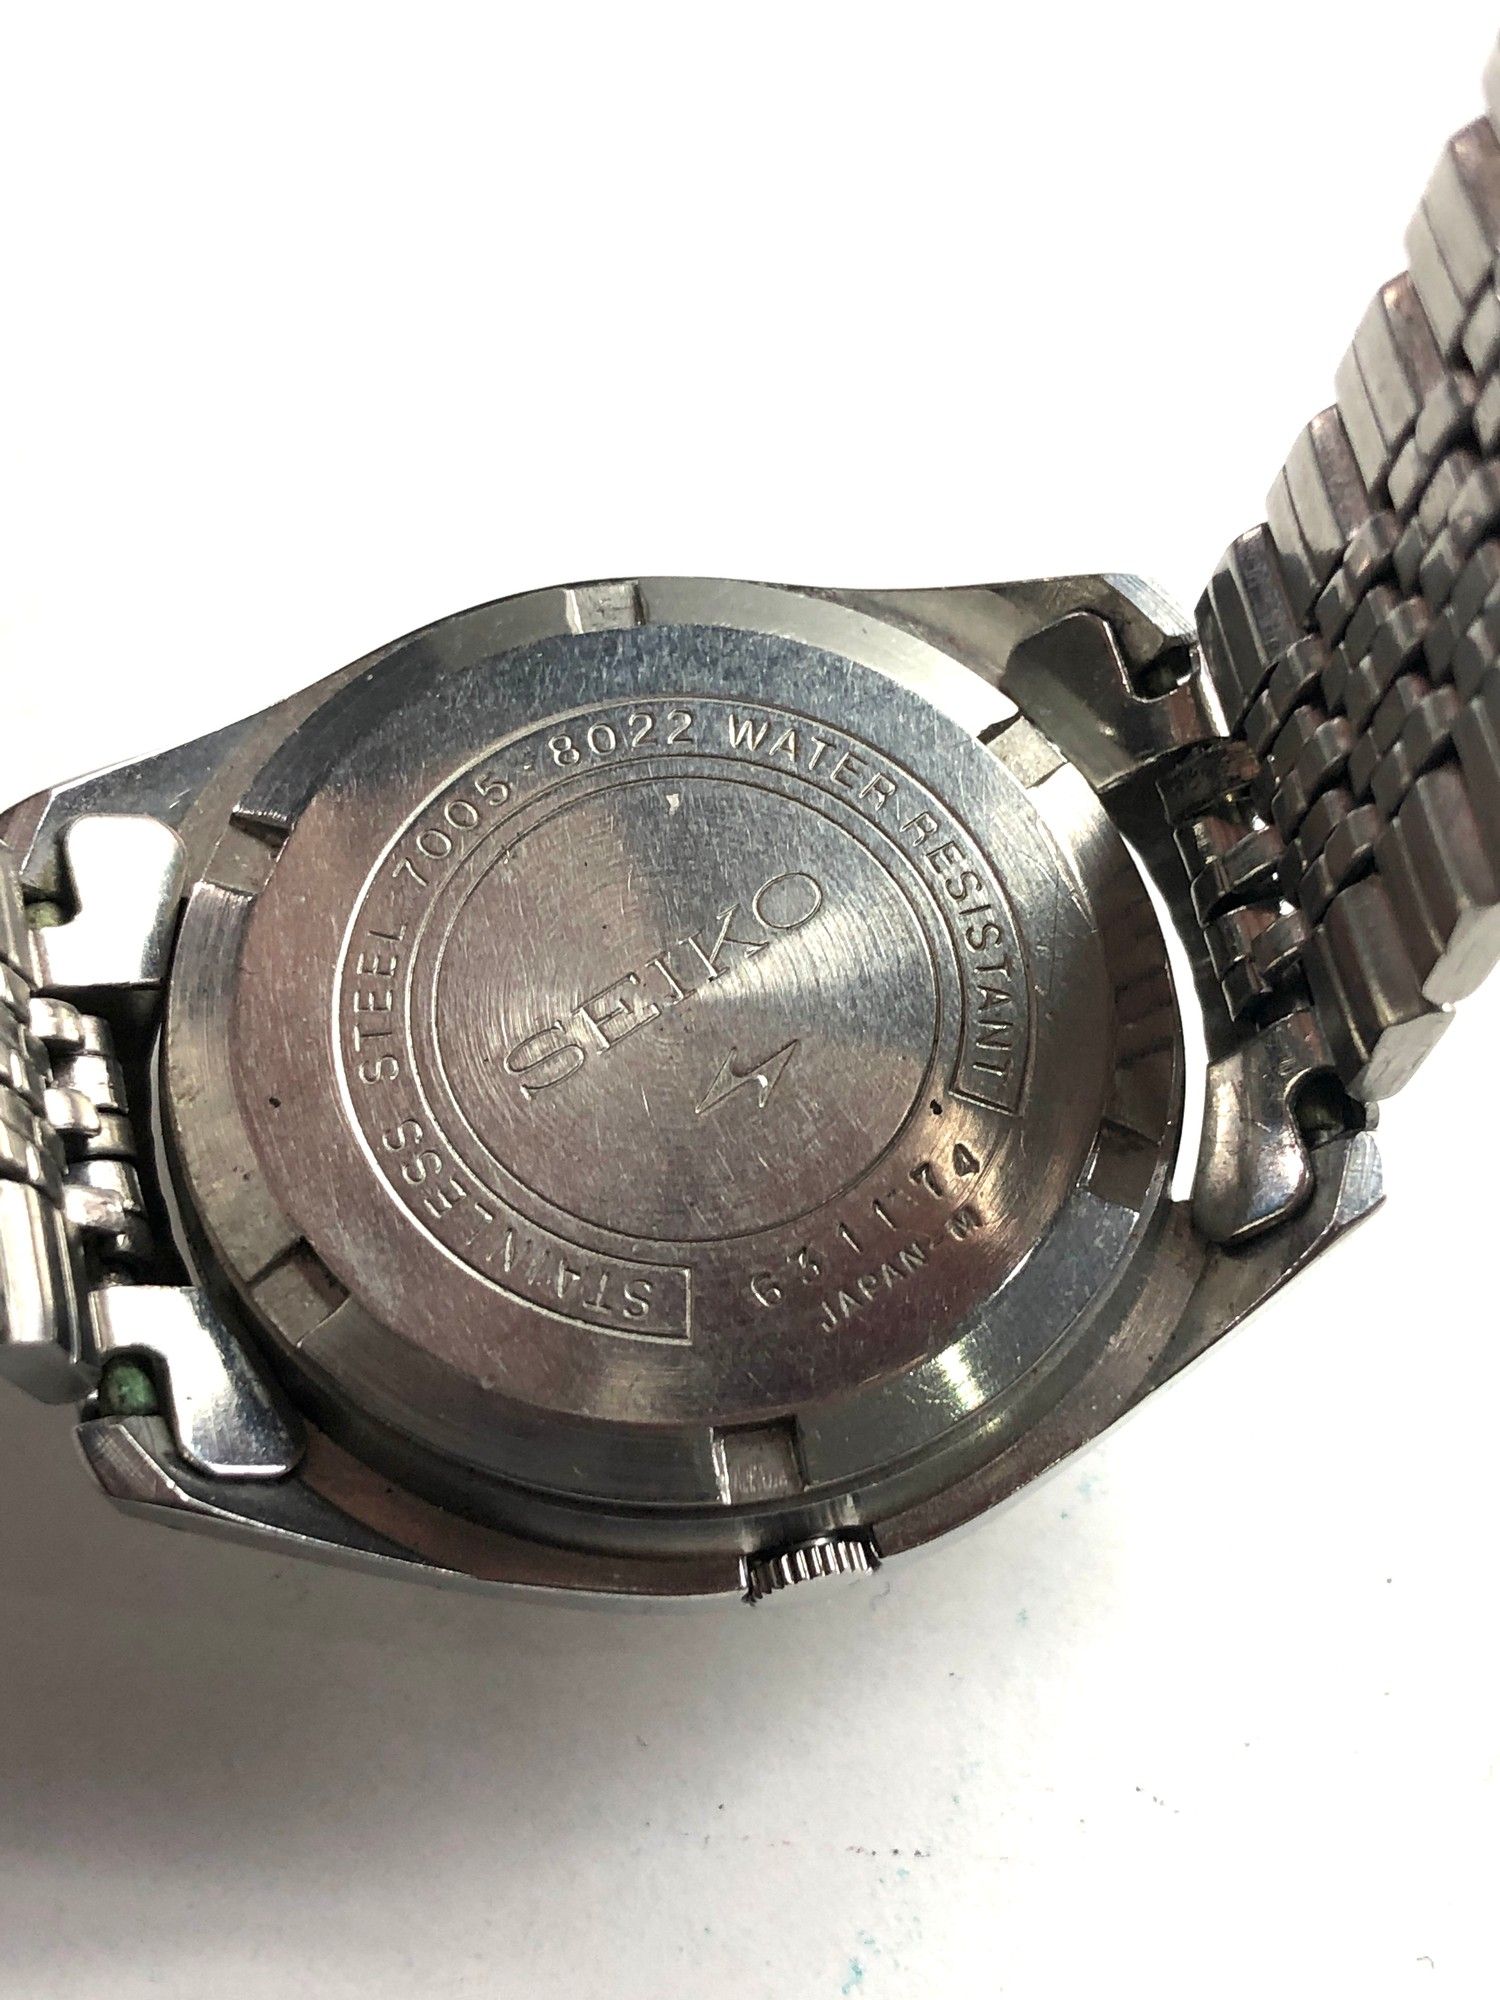 Vintage s-steel 1970's Seiko 7005-8022 classic 17 Jewel automatic Datejust watch working order no - Image 5 of 5